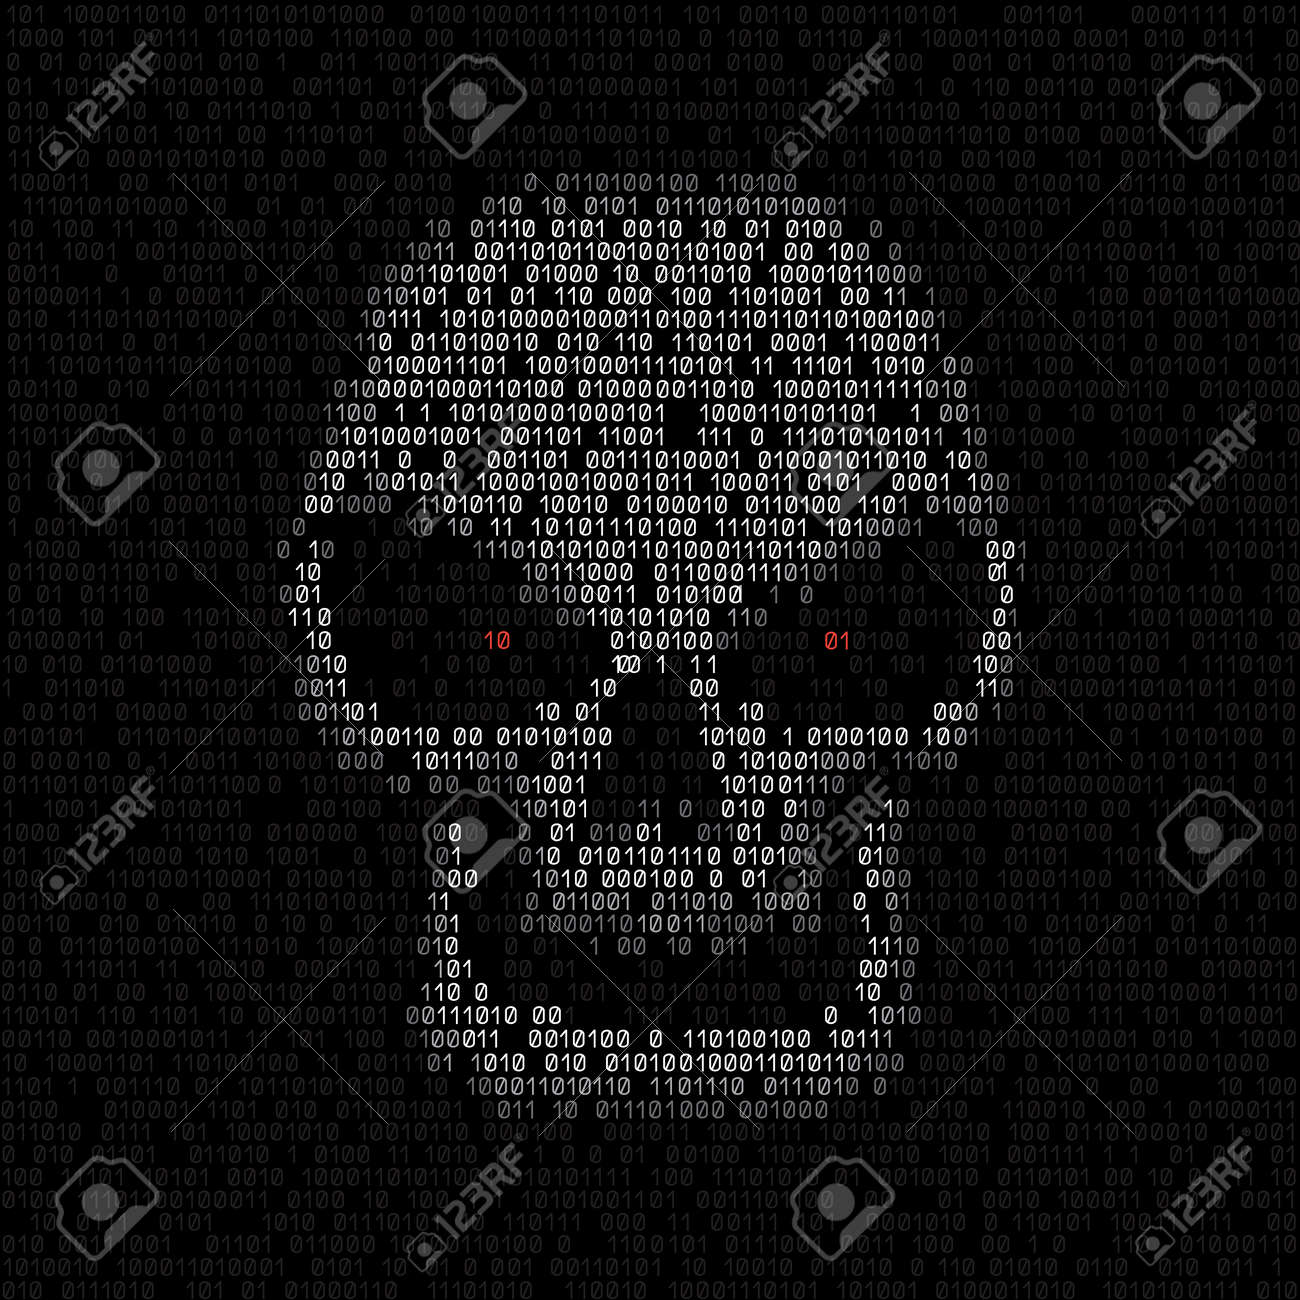 Programming Code Shows White Hacker Skull With Red Eyes On Black